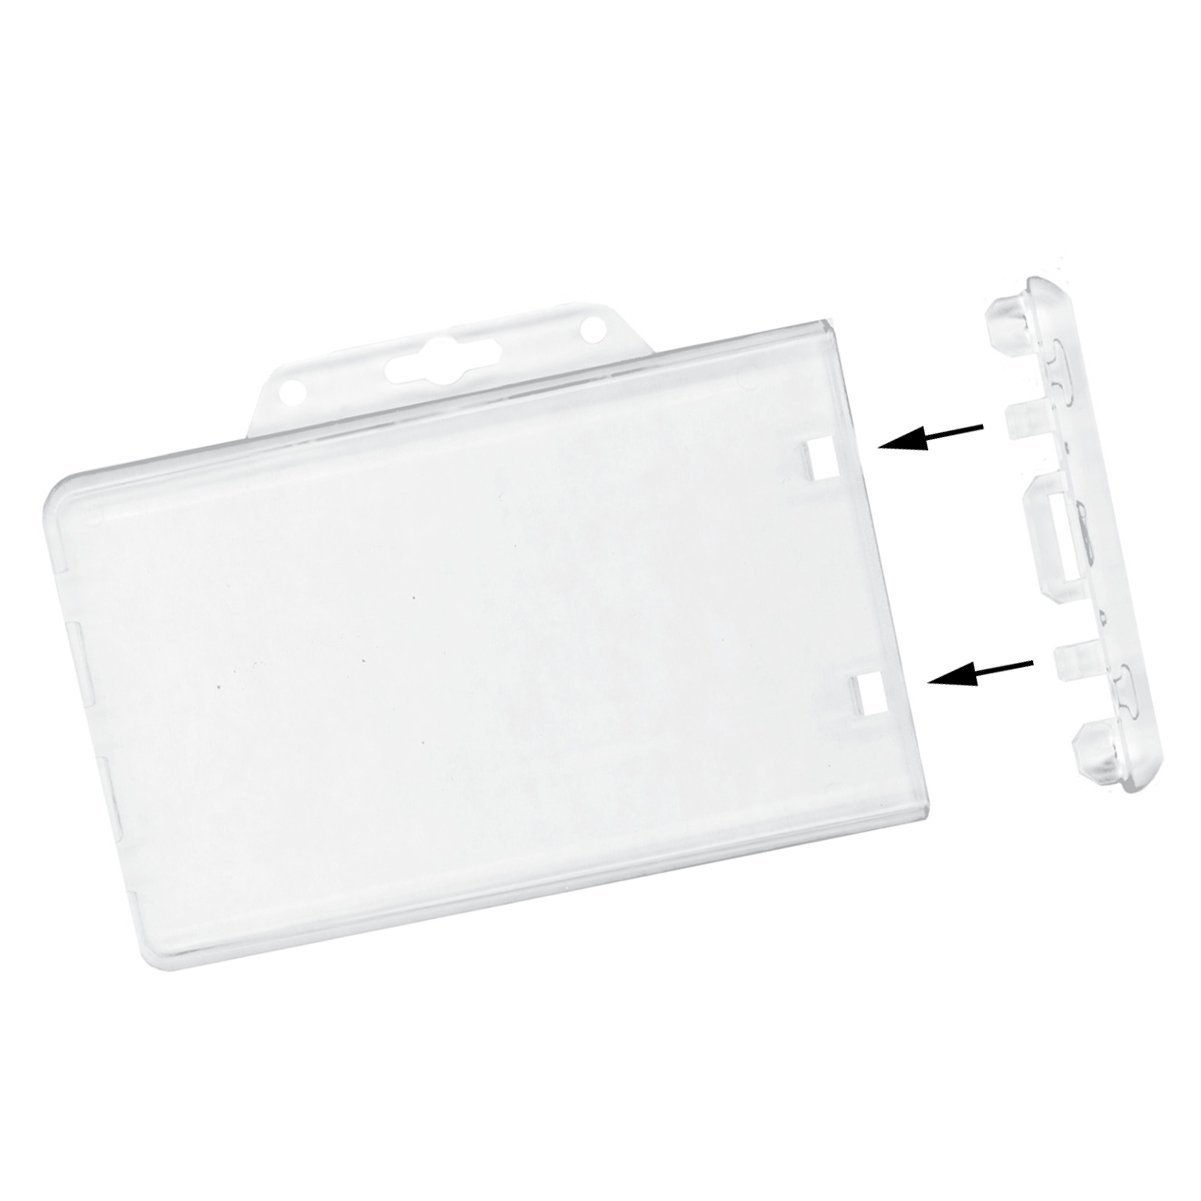 Clear Horizontal Permanent Locking Plastic Card Holder Sold Individually Specialist ID SPID-6040